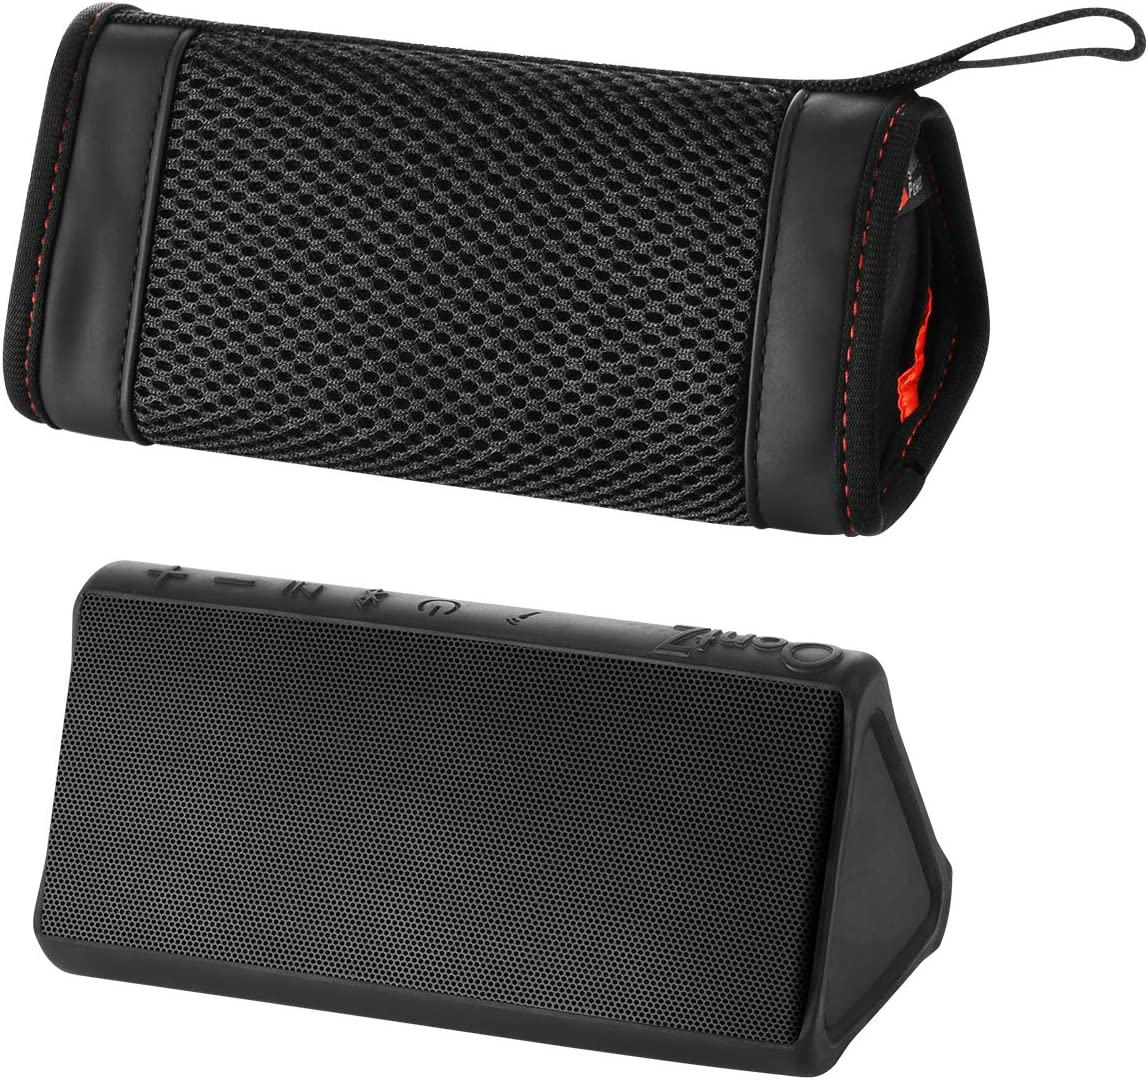 TXEsign Neoprene Mesh Carrying Soft Case Cover Compatible with OontZ Angle 3 3rd Gen Angle 3 Ultra OontZ Angle 3 Plus Portable Wireless Bluetooth Speaker